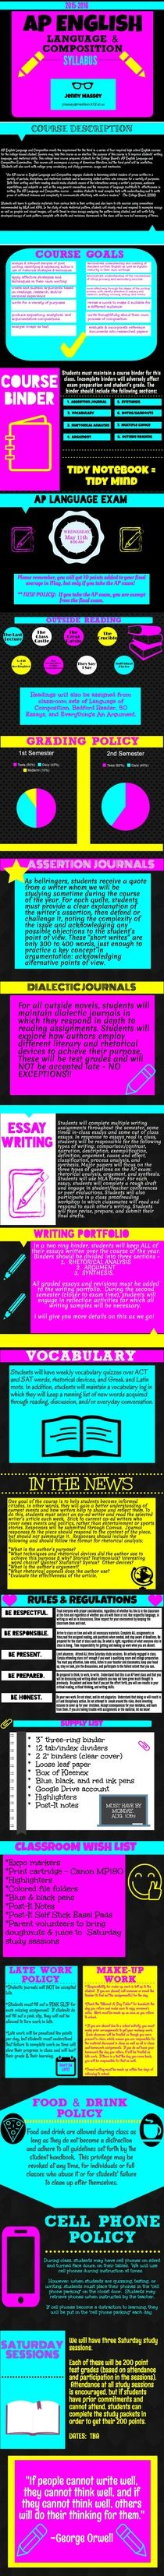 AP Language and Composition Syllabus - J. Massey | Piktochart Infographic Editor